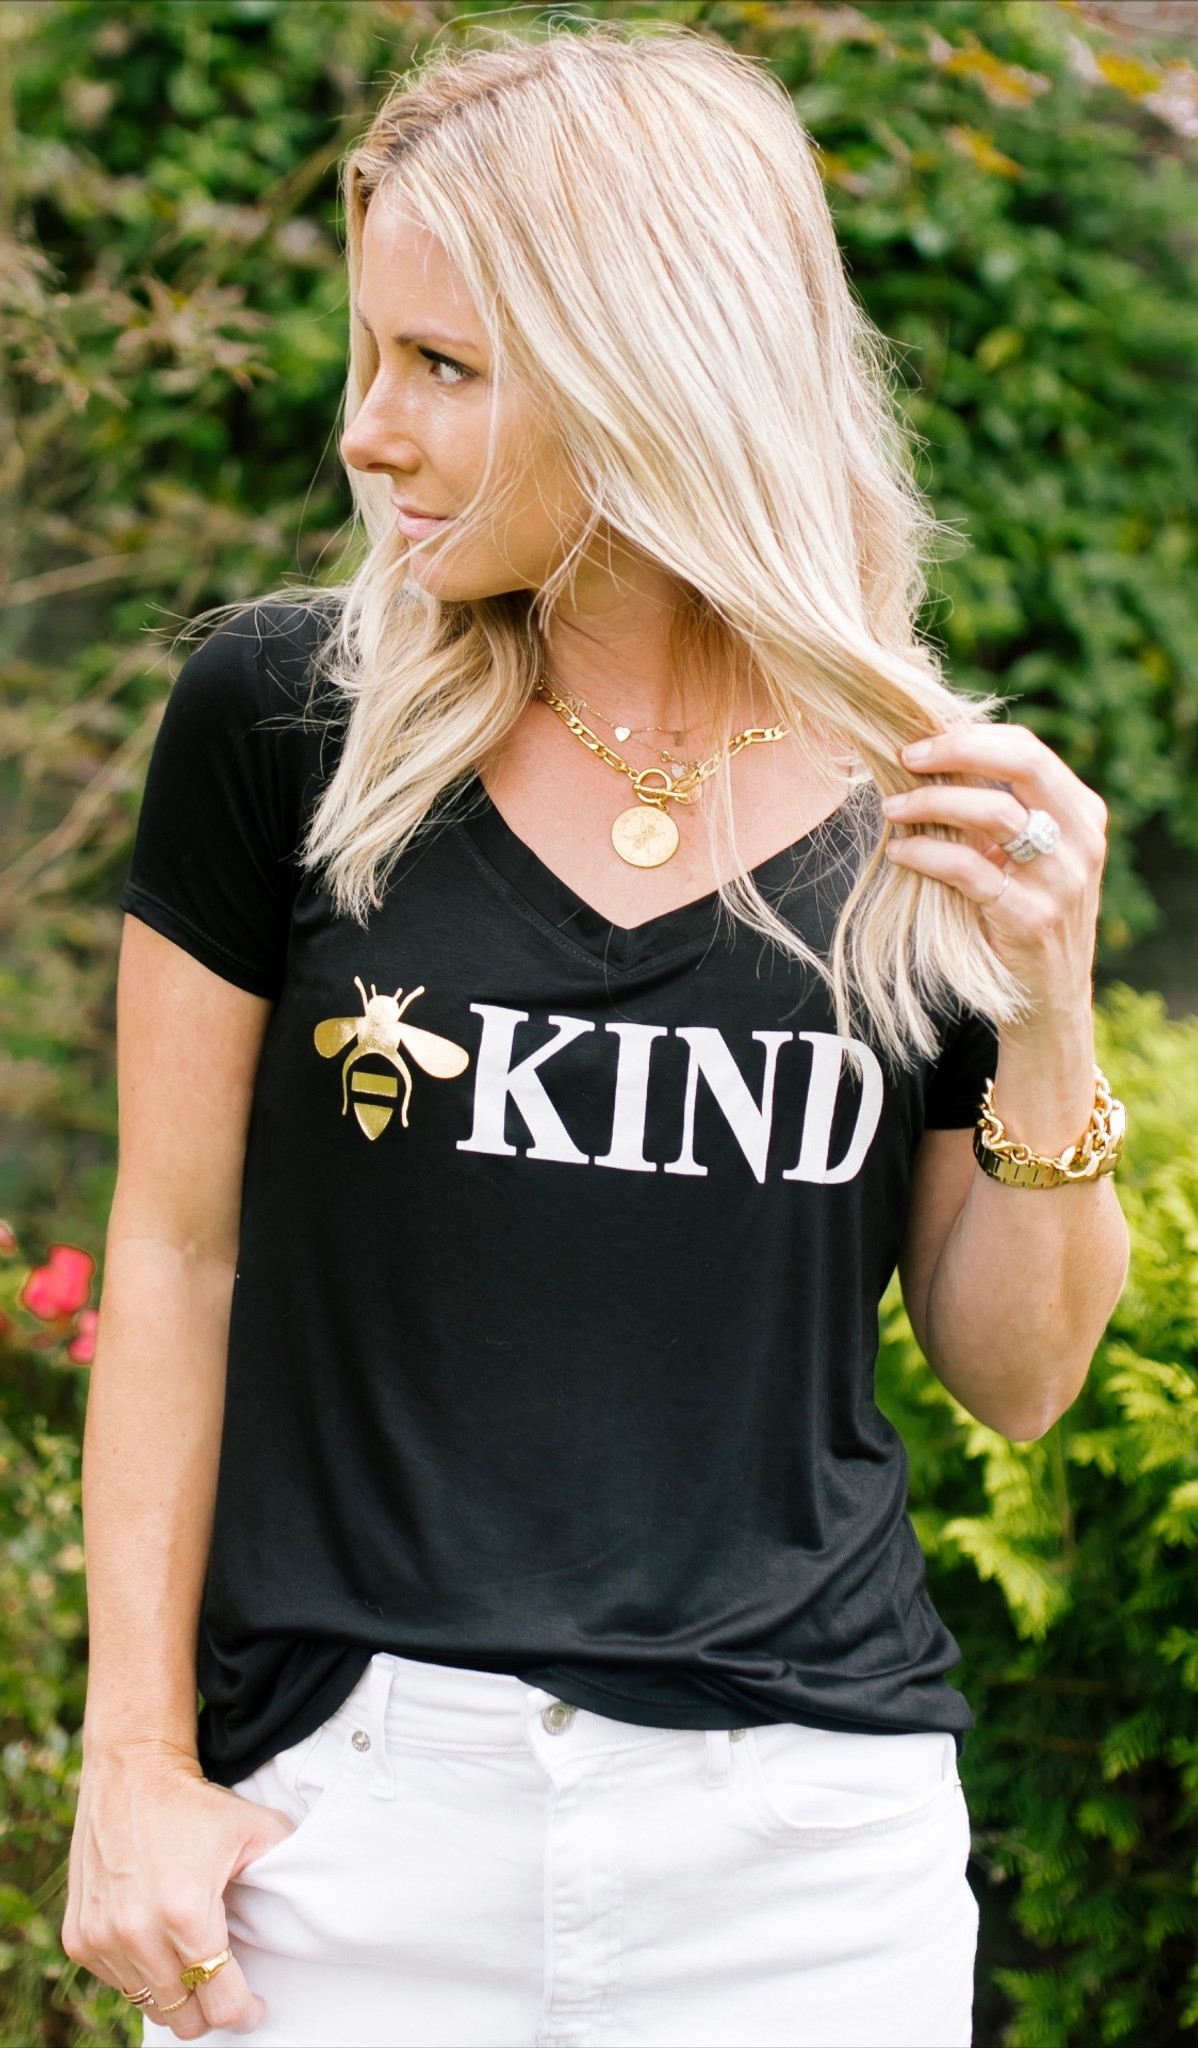 BEE KIND S/S  V-NECK TEE with a 3 BEE'S GRAPHIC IN GOLD FOIL on BACK (Black)